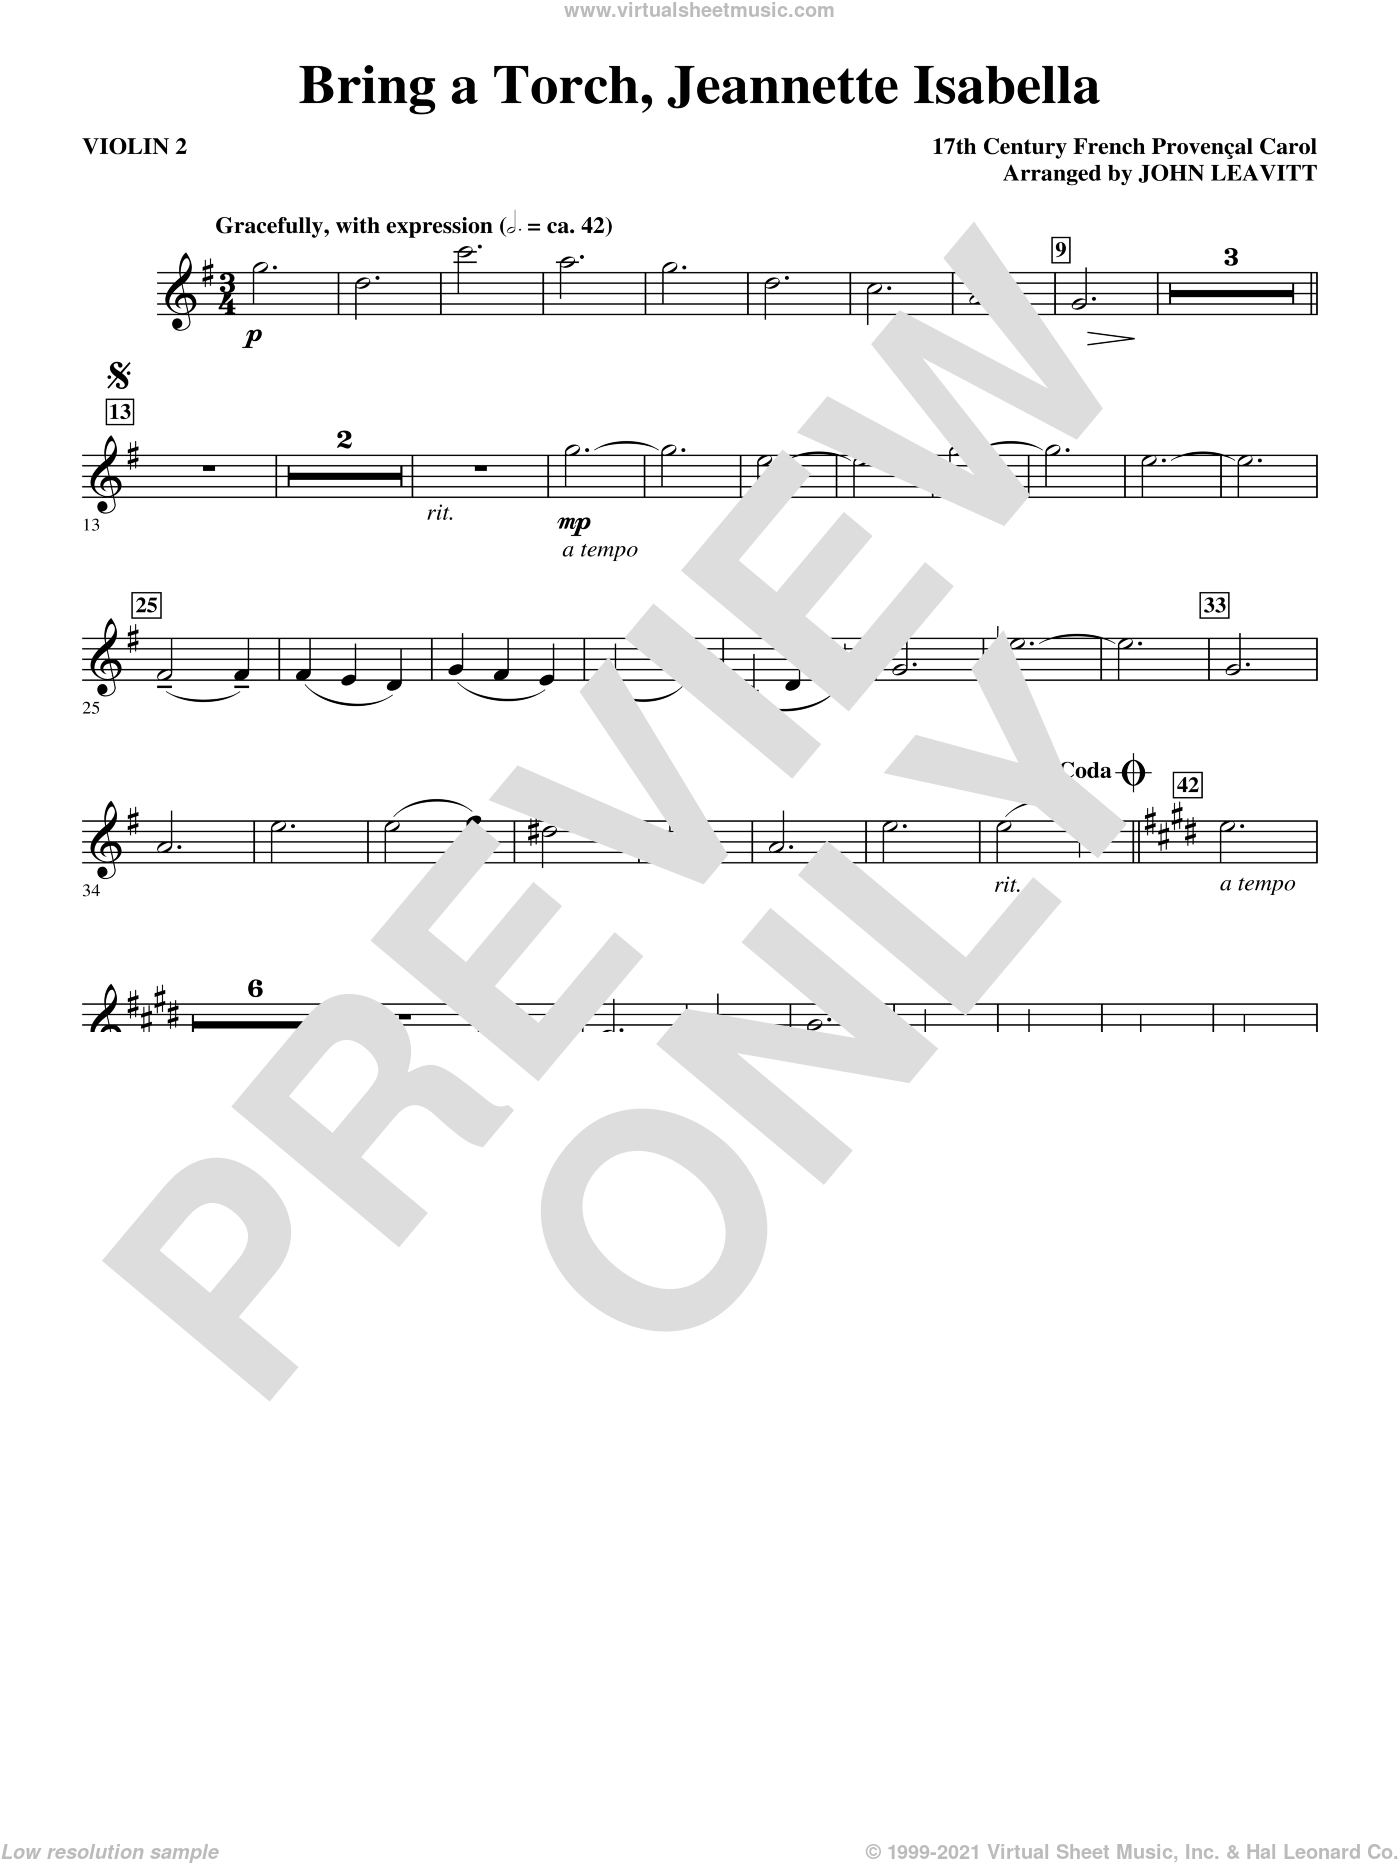 Bring a Torch, Jeanette Isabella sheet music for orchestra/band (violin 2) by John Leavitt and Miscellaneous, intermediate skill level